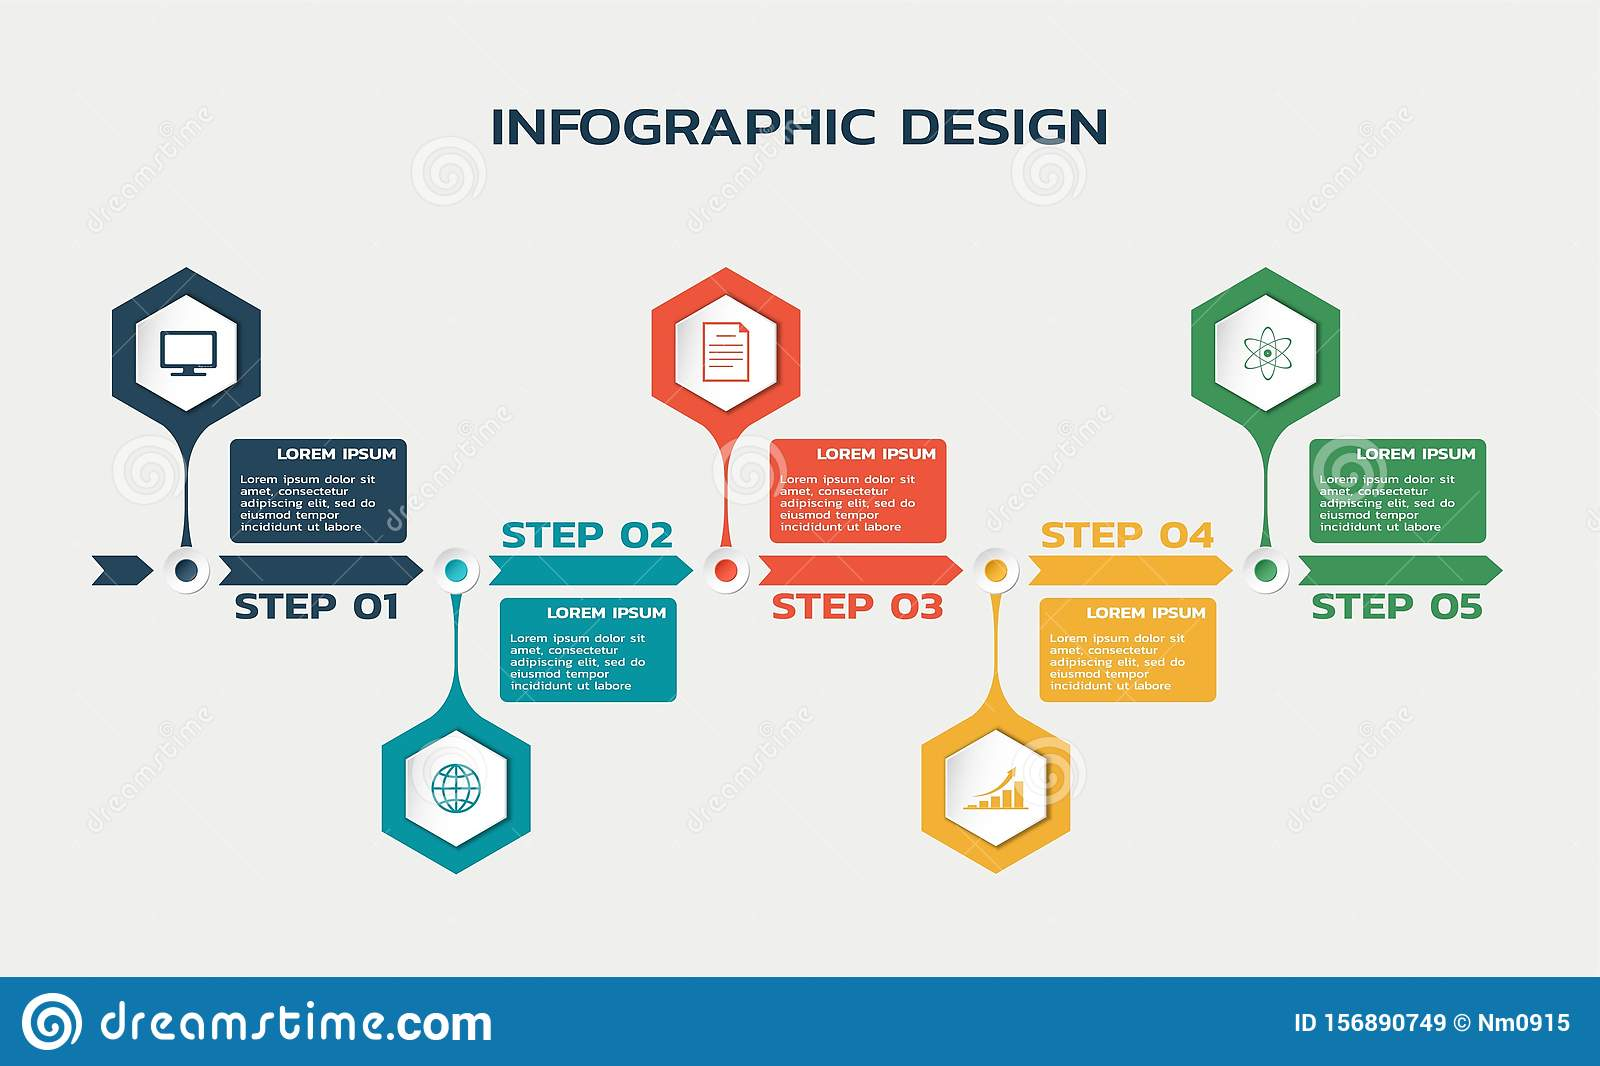 Workflow five steps infographic template with hexagons and text. business flowchart